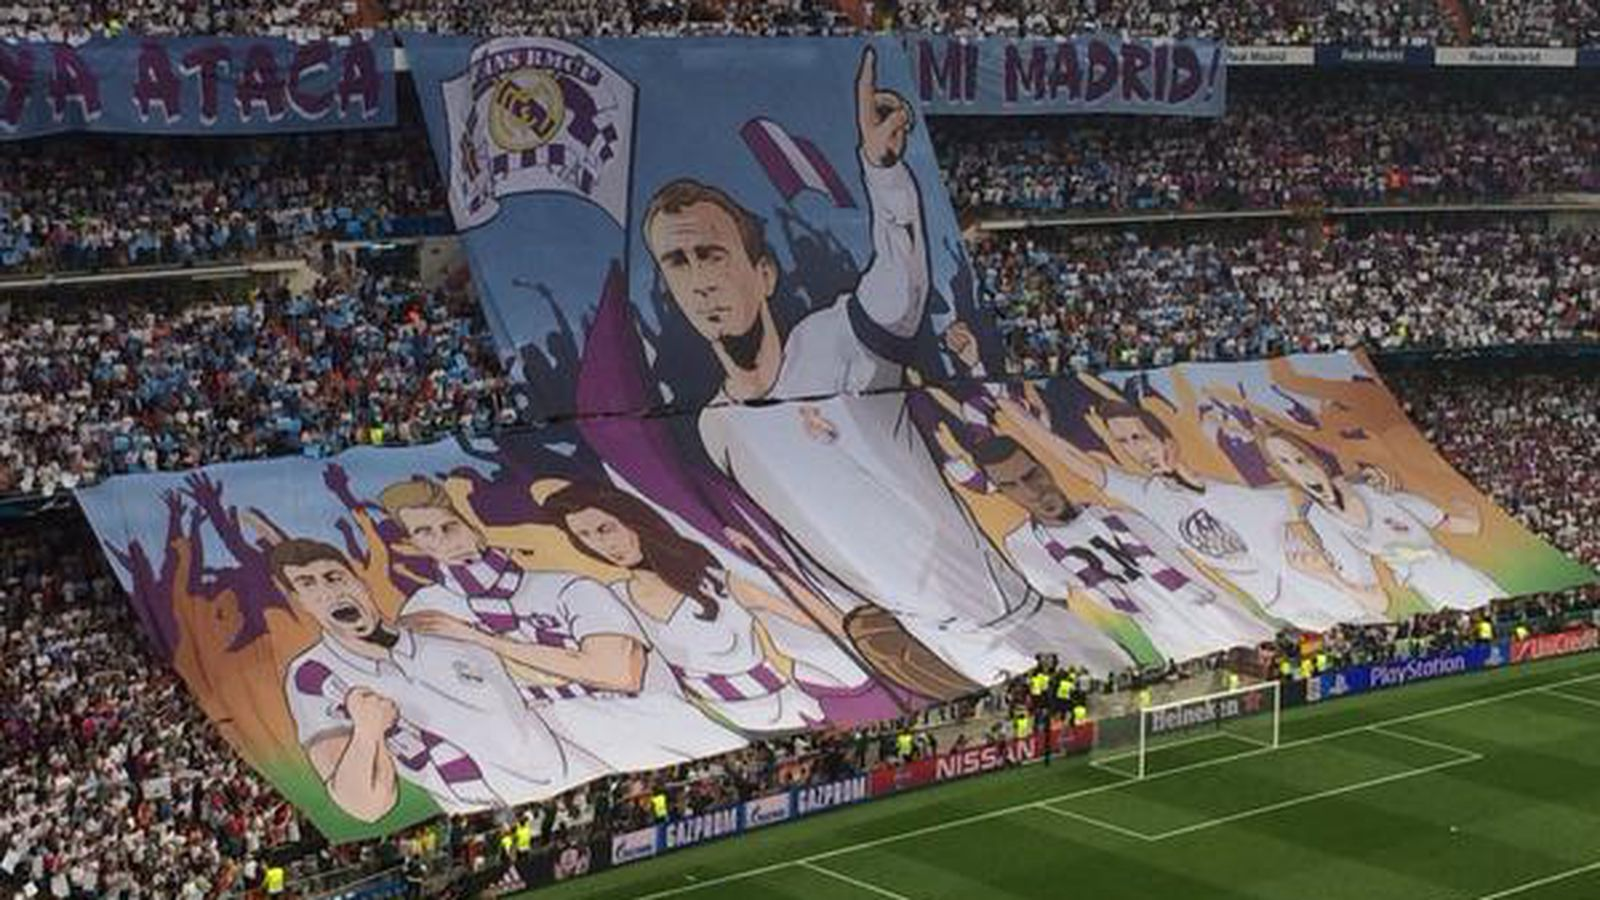 Real Madrid brought their A+ tifo game for Juventus